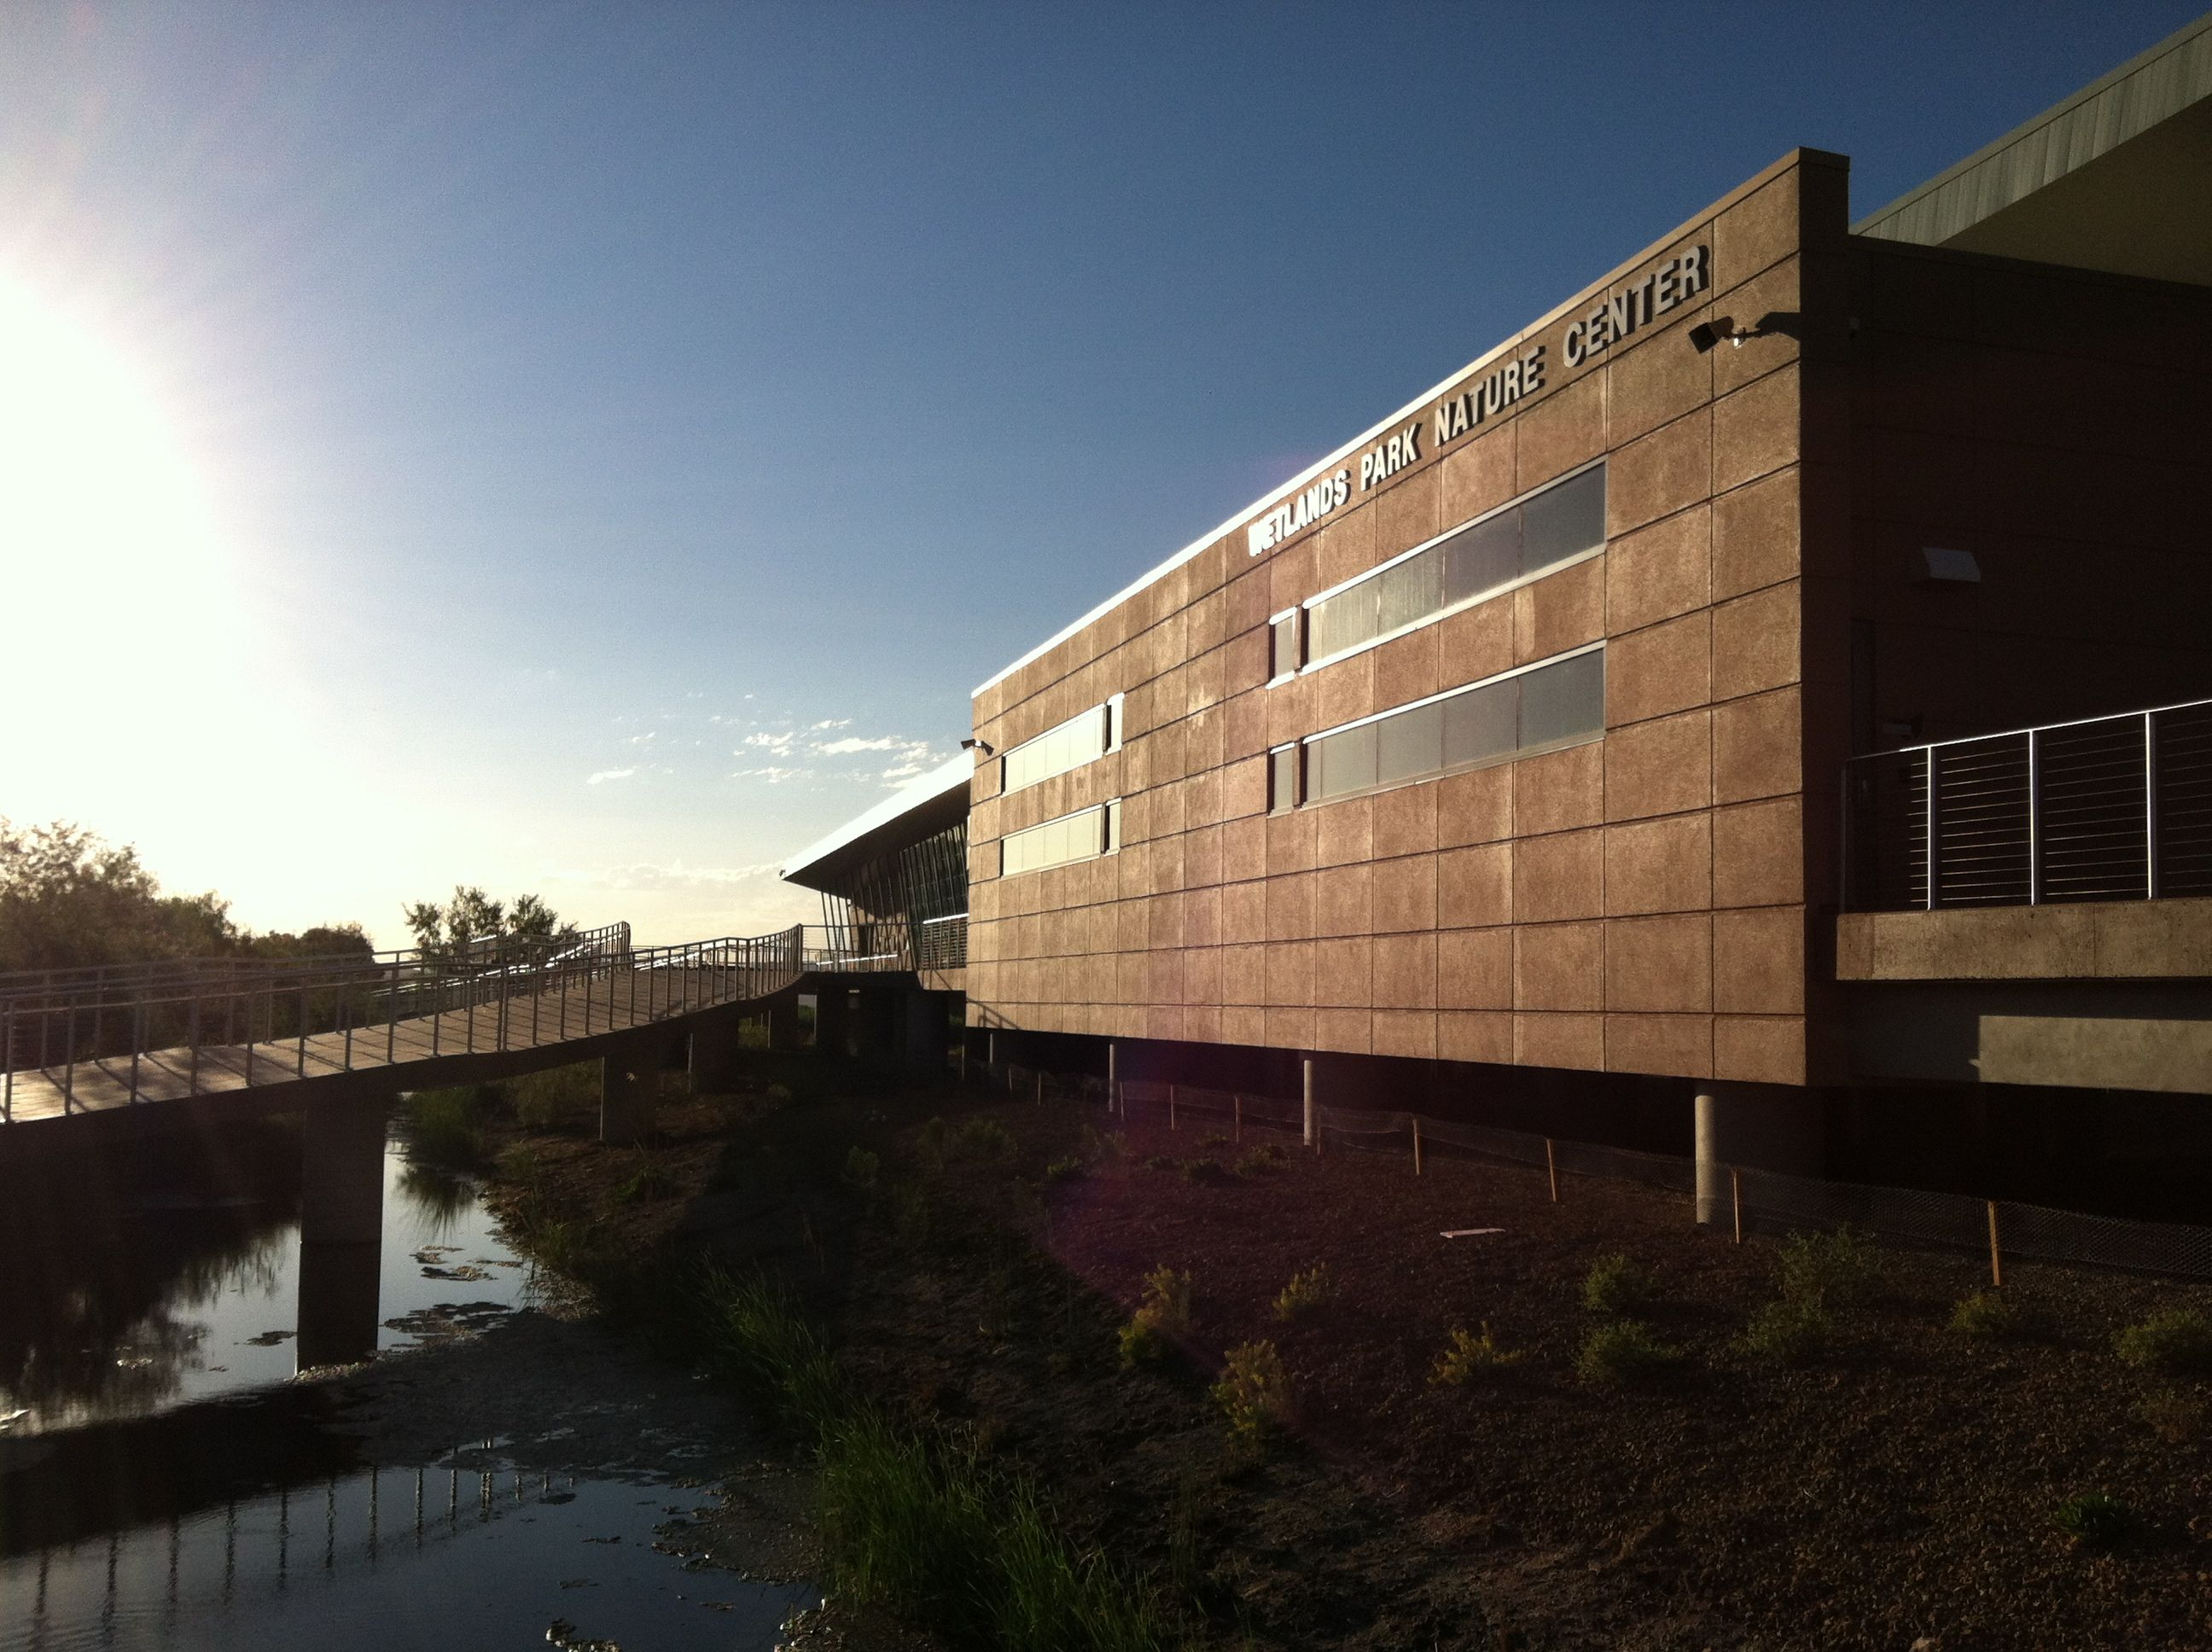 Clark County Wetlands Nature Center